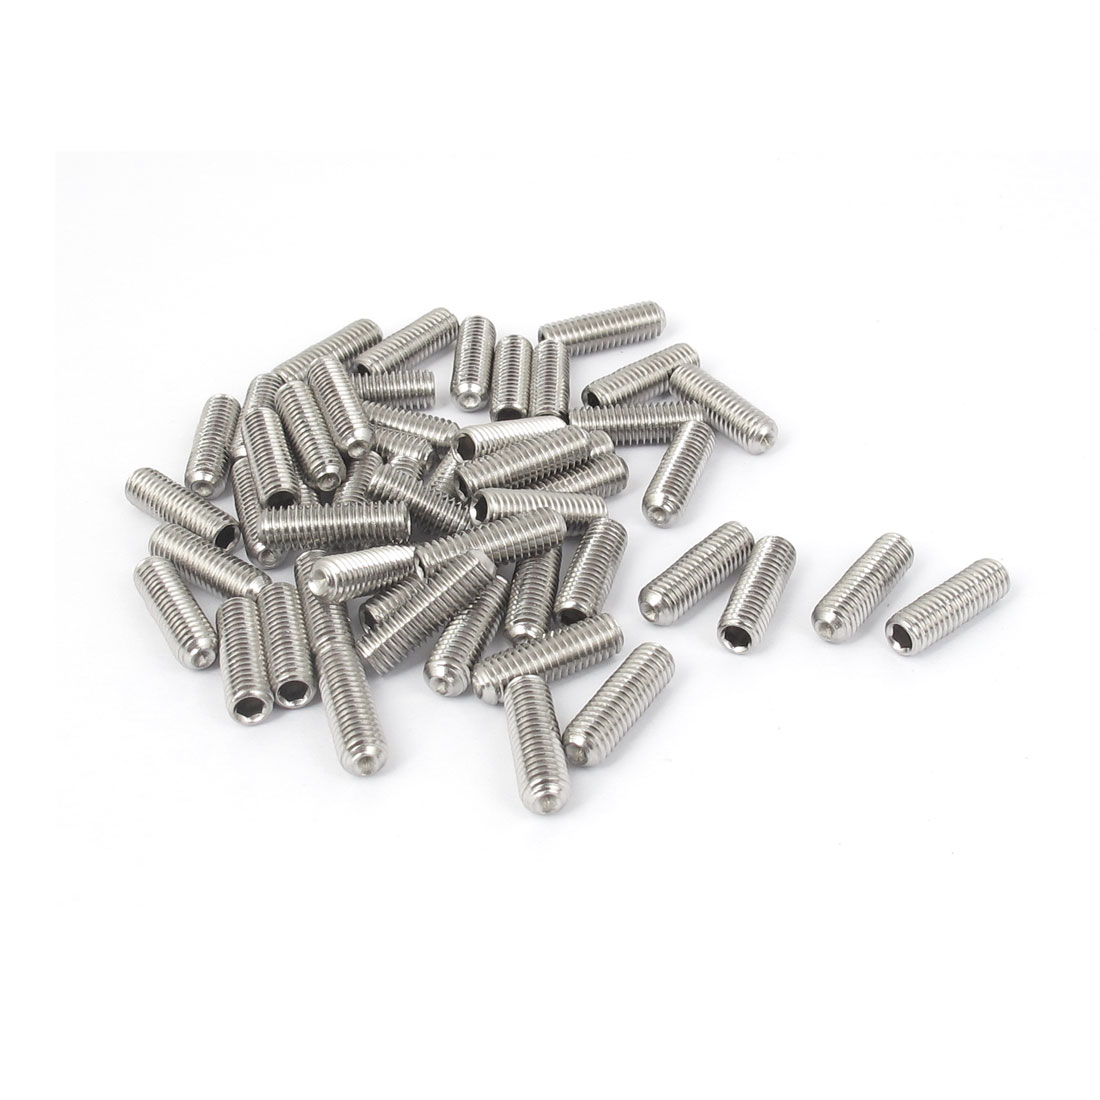 M5x16mm Stainless Steel Hex Socket Set Cap Point Grub Screws Silver Tone 50pcs